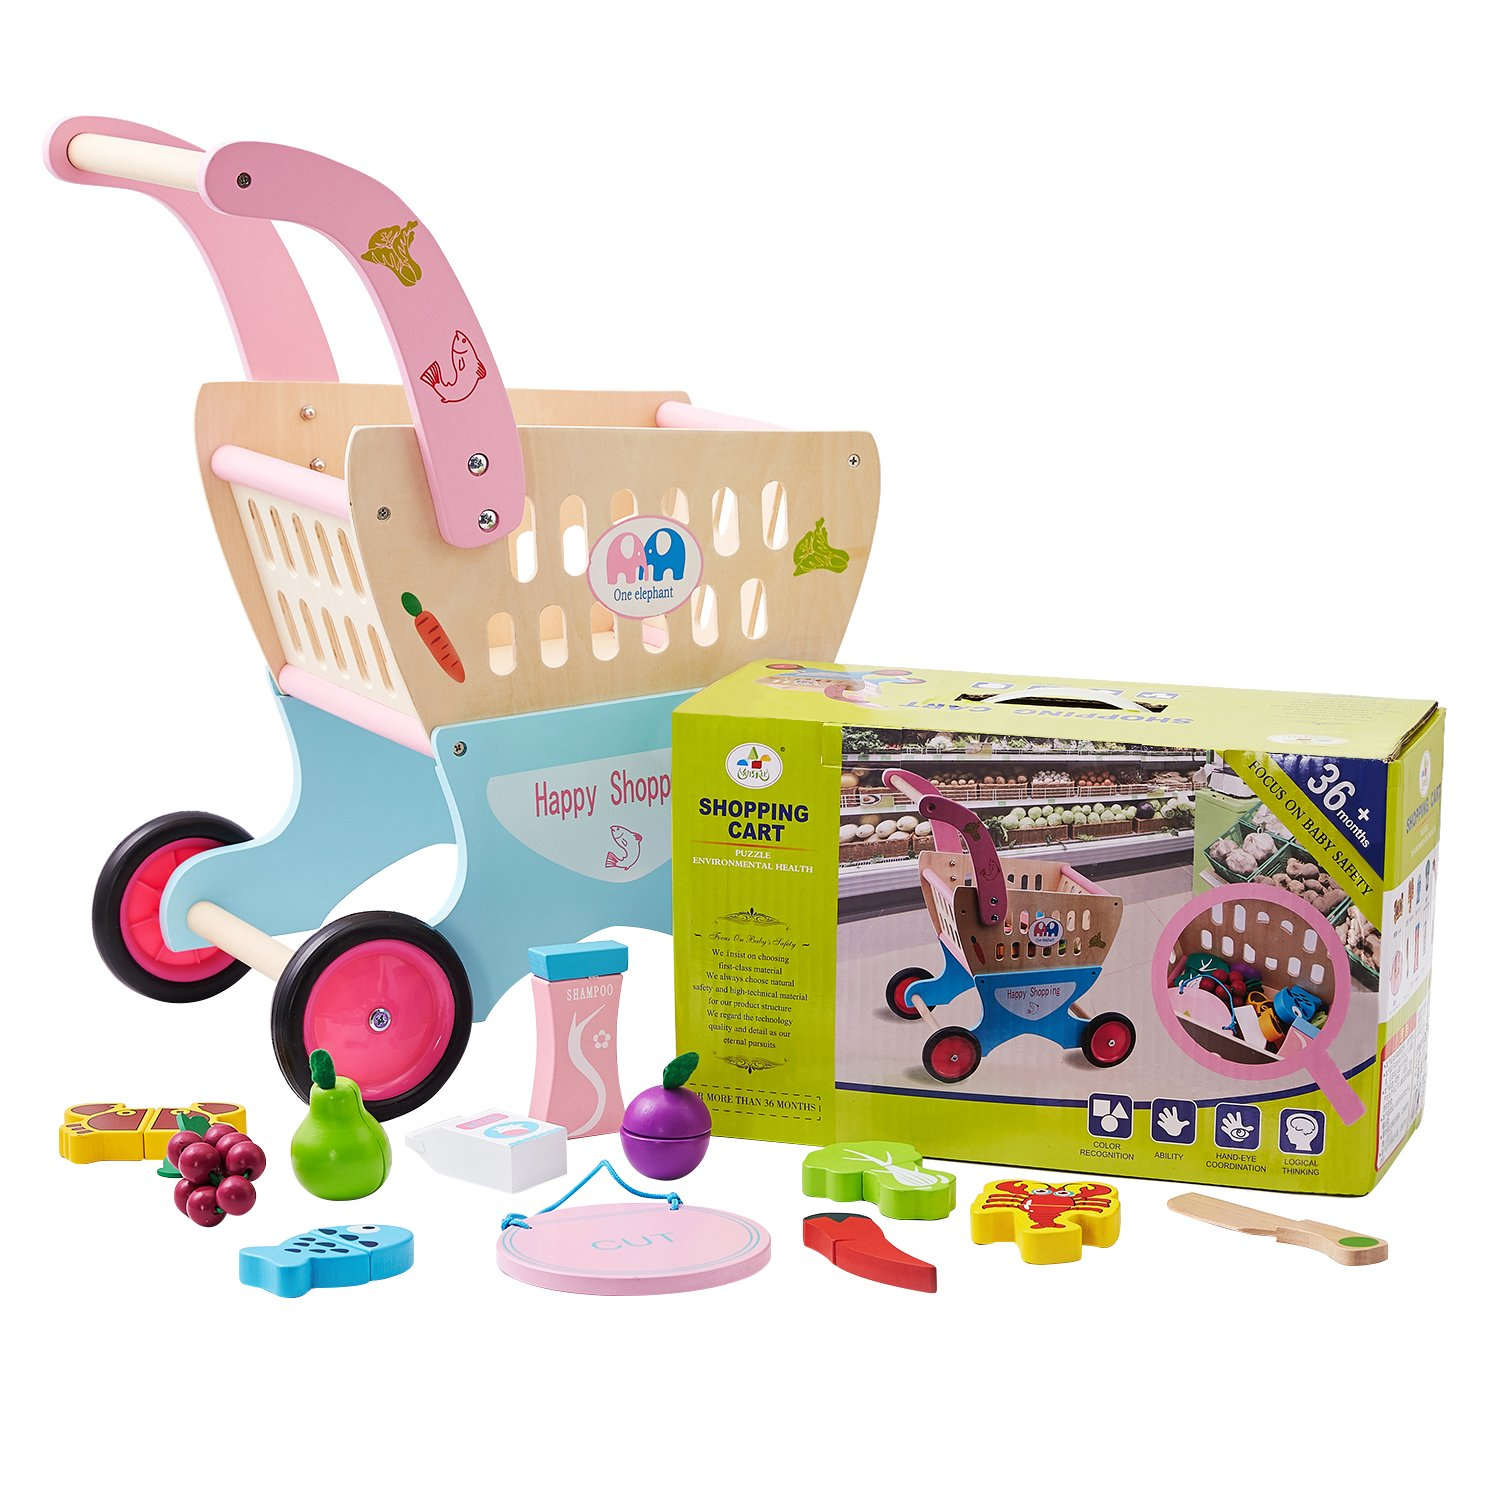 HM-tech Wooden Baby Learning Walker Toddler Toys, Kid's Wooden Shopping Cart with Cutting Fruit Set, Roll Cart Push & Pull Toy by HM-tech